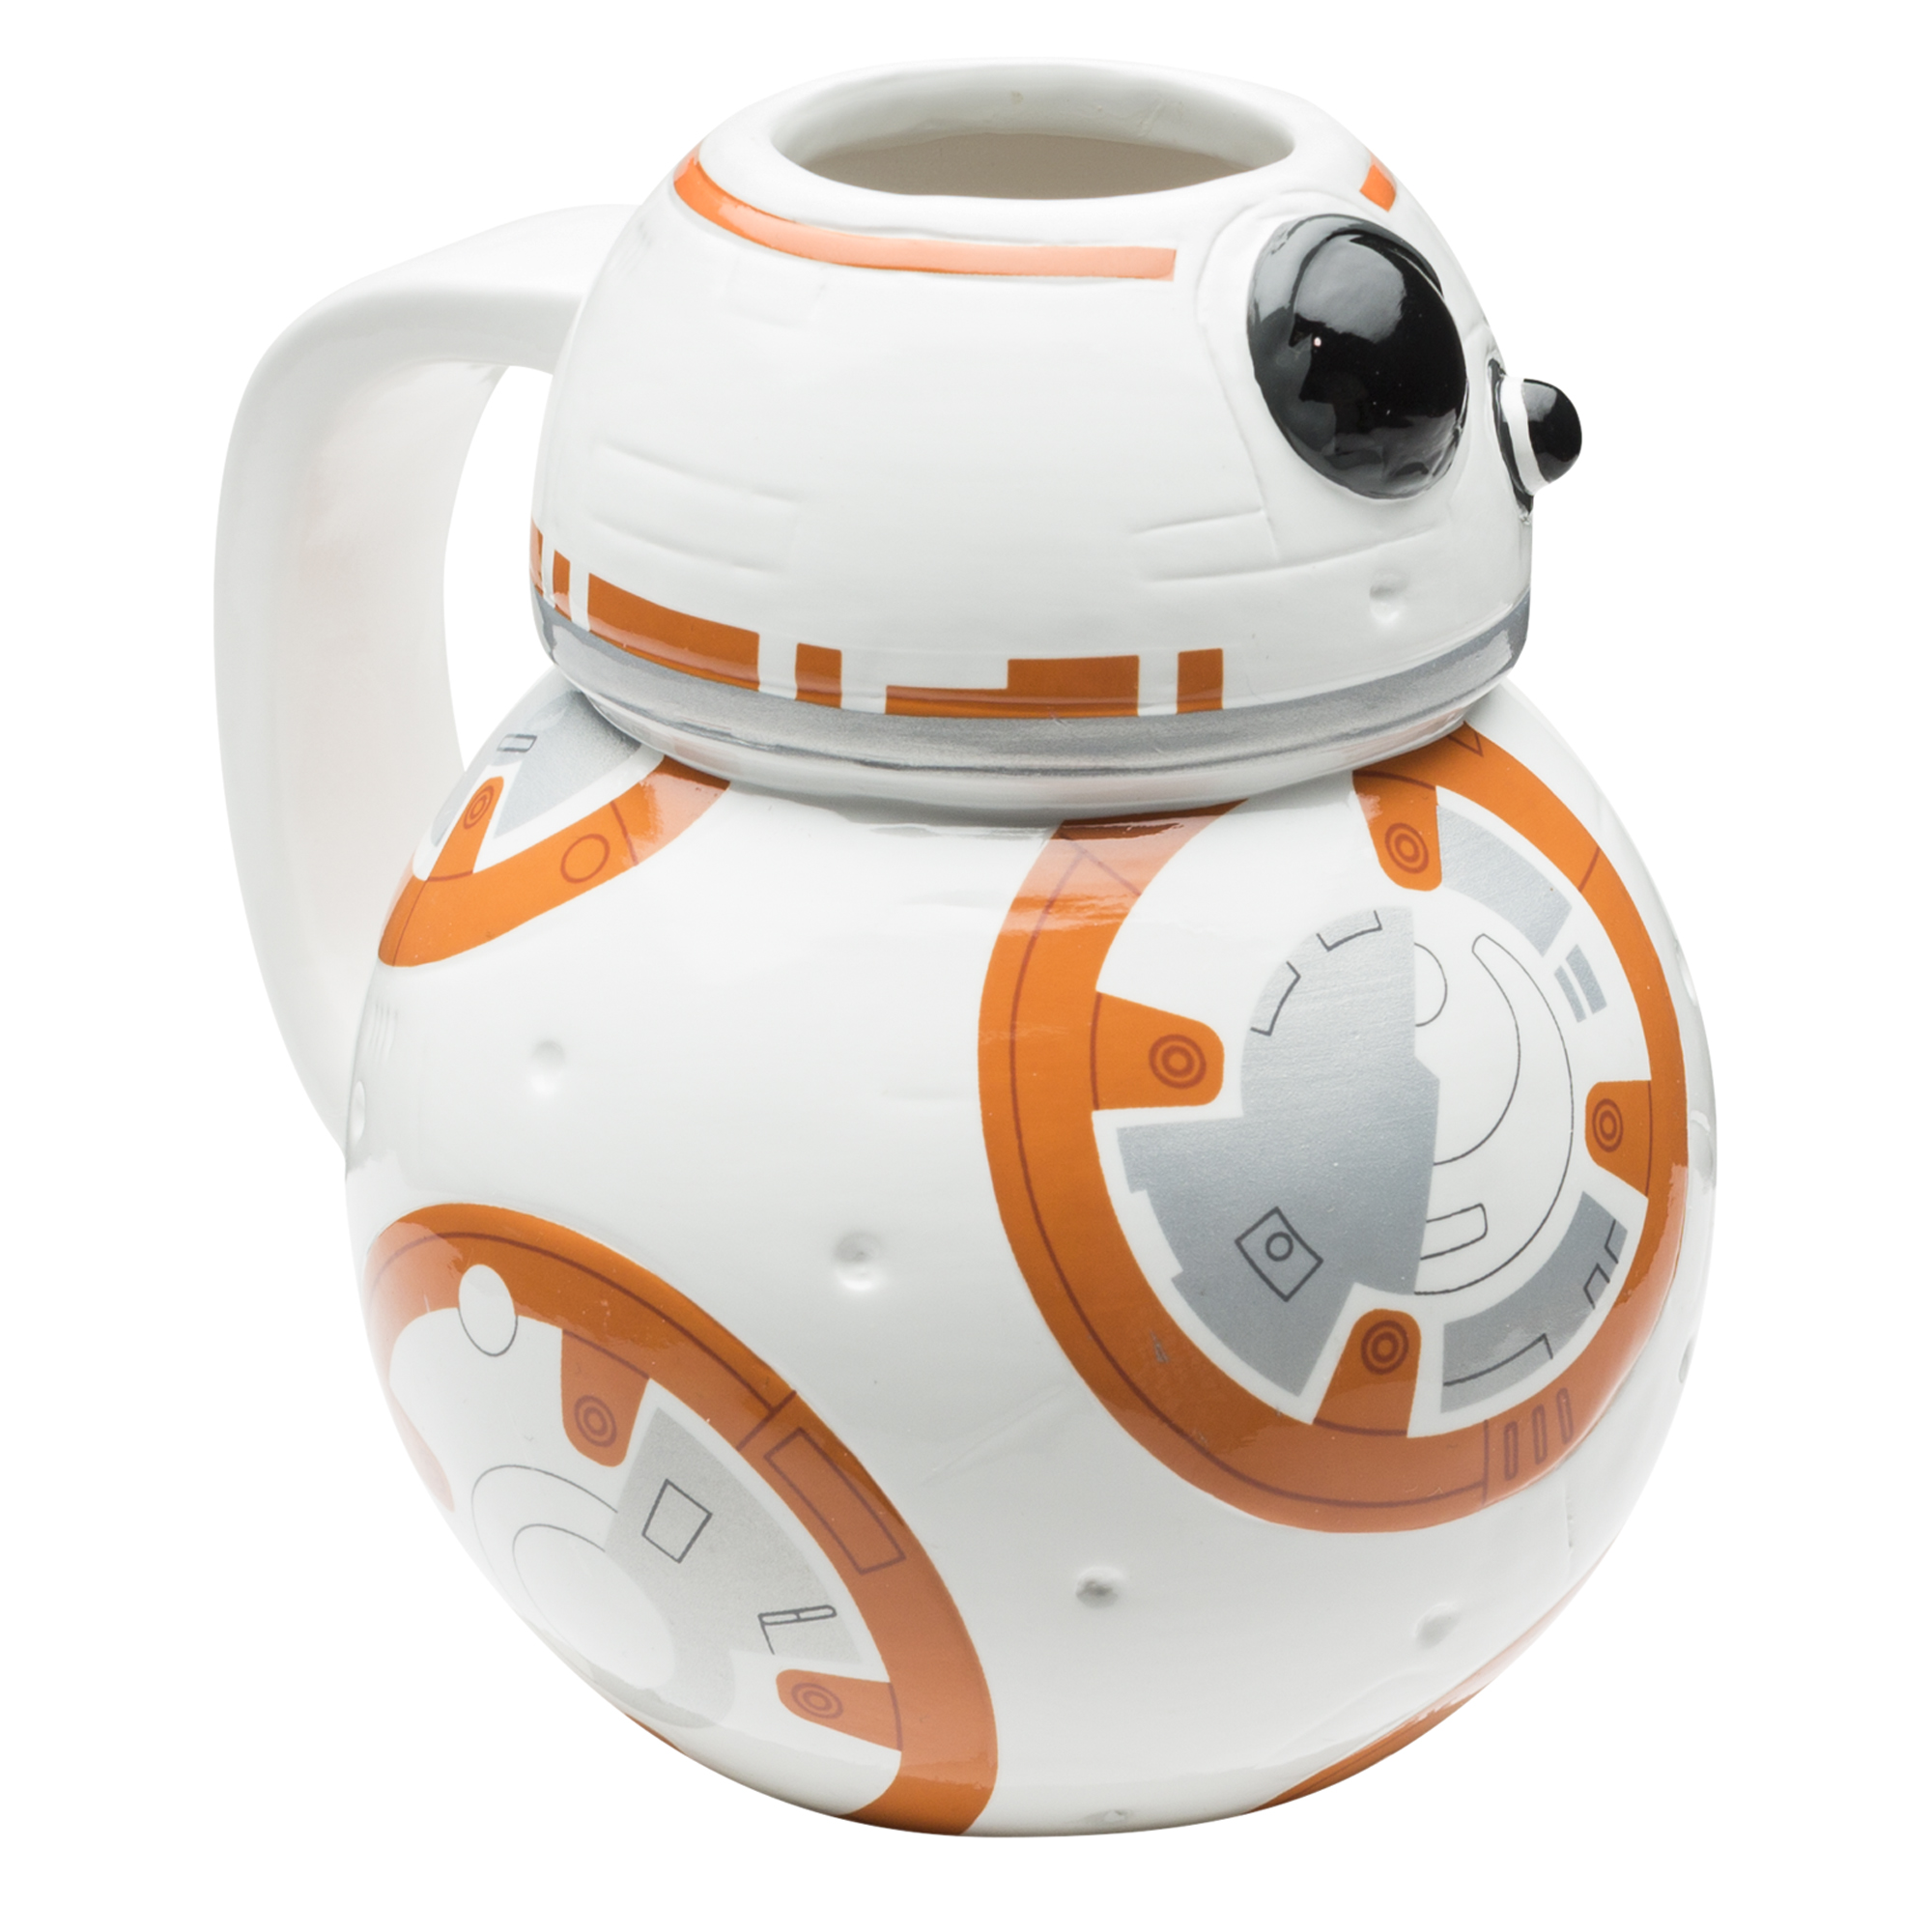 Star Wars Ceramic Coffee Mug, BB-8 slideshow image 6